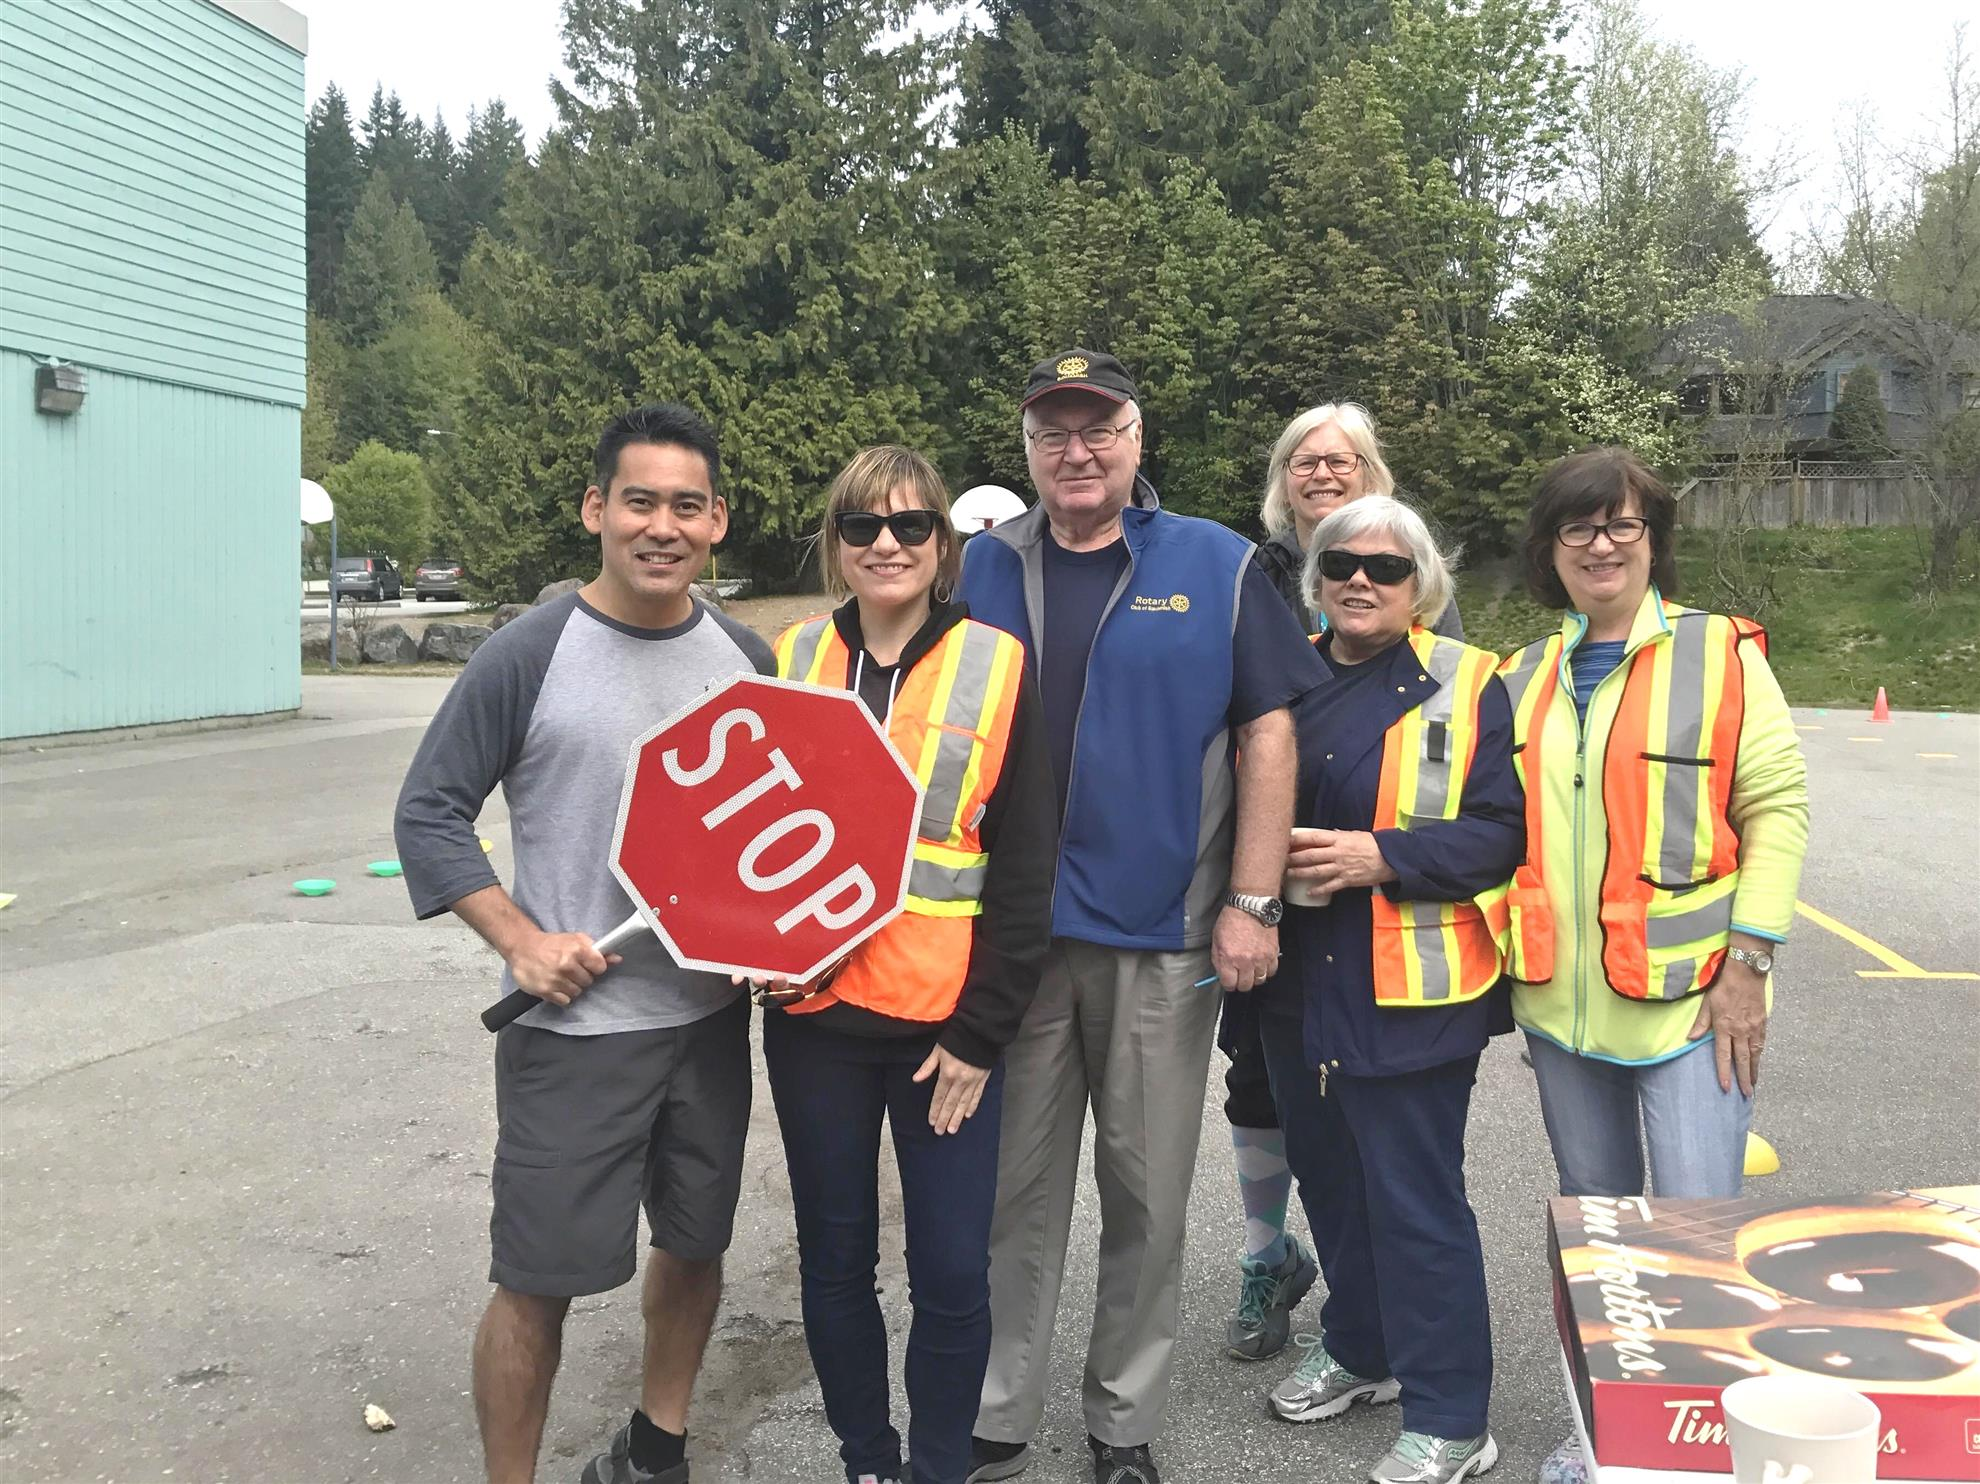 Stories Rotary Club Of Squamish Rodeo Bundling 1 Navy M On May 9 10 2017 Rotarians With Help From School Staff Held The Annual Bike Safety At 5 Elementary Schools